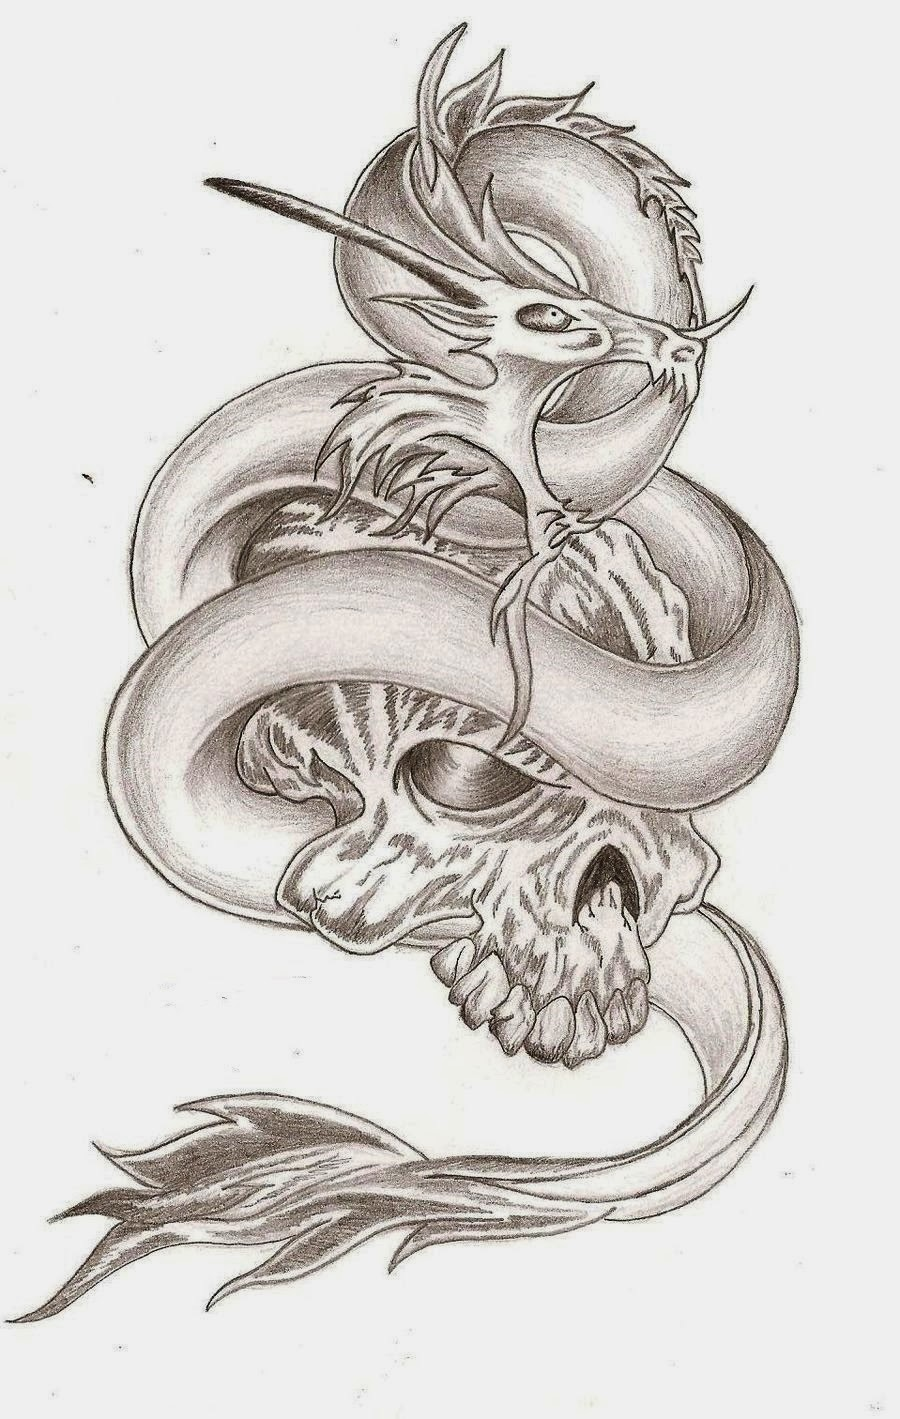 Skull and dragon tattoo stencil 45 (click for full size)